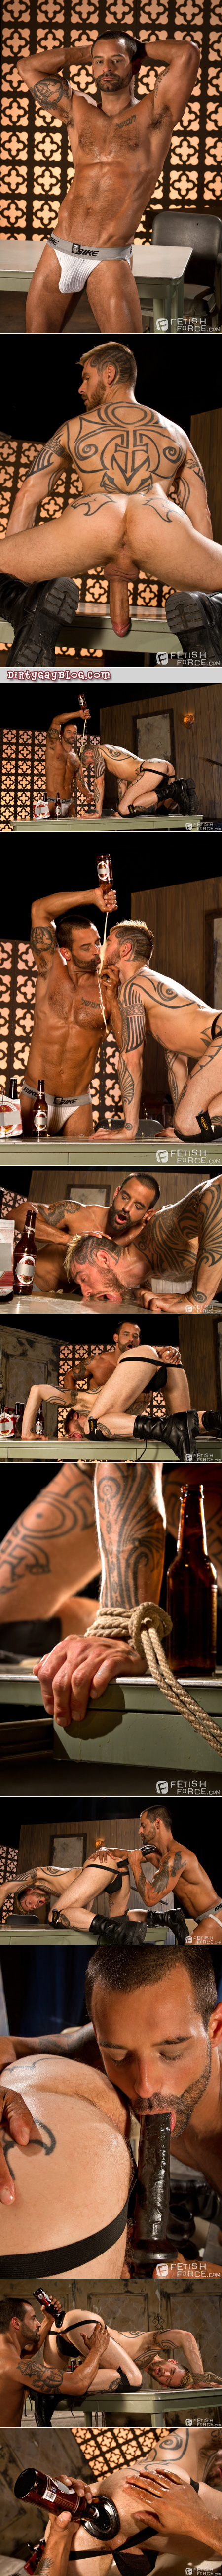 Heavily tattooed muscle stud receiving an ass funnel and beer enema.